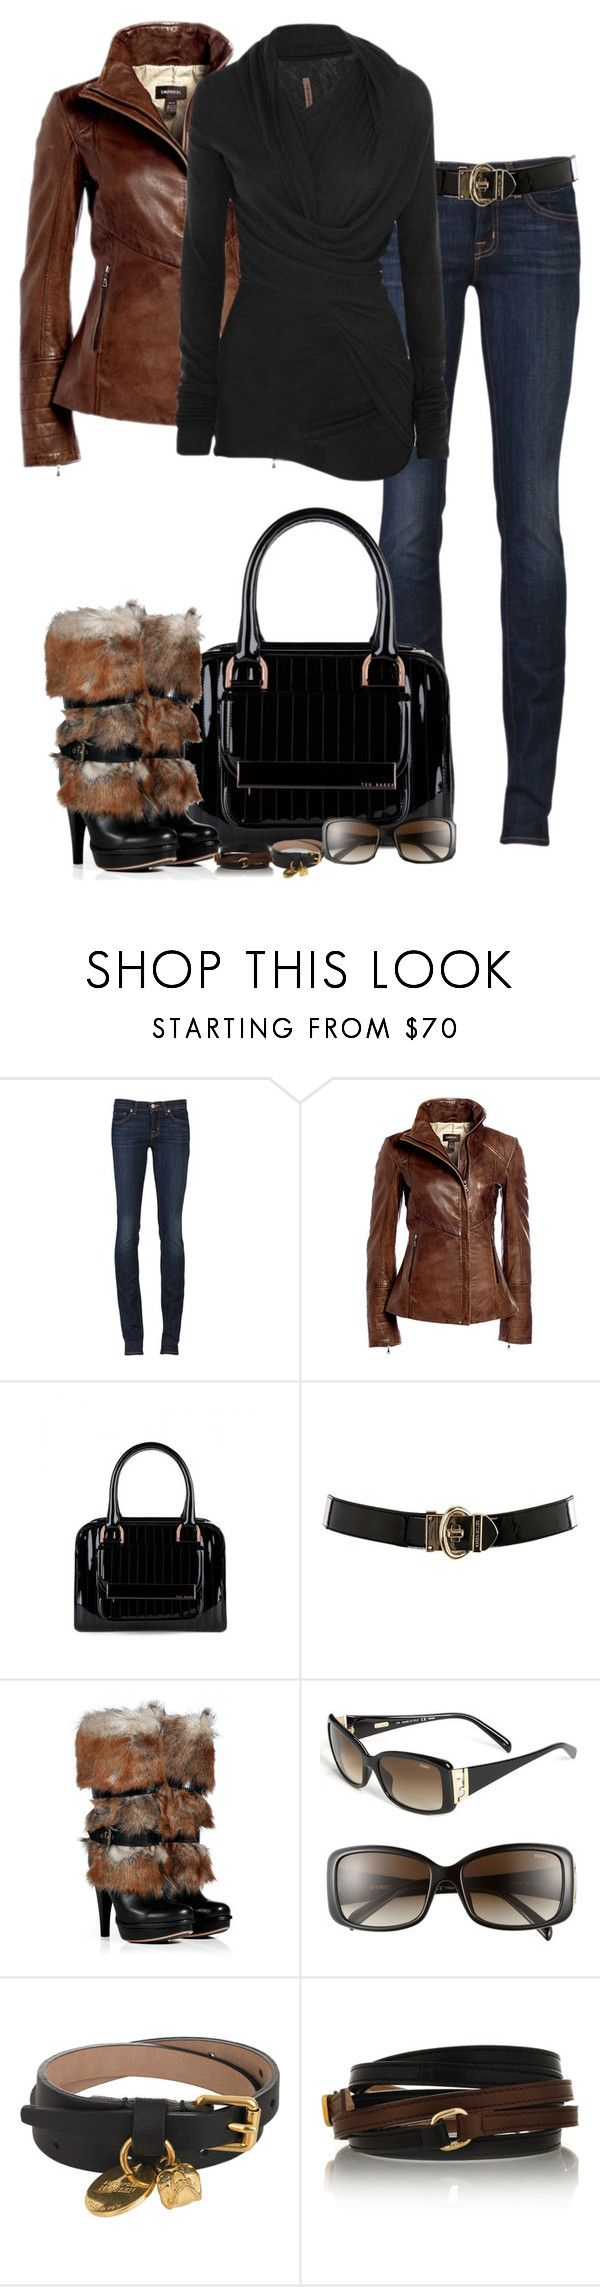 """""""Not Your Everyday Uggs"""" by partywithgatsby ❤ liked on Polyvore featuring J Brand, Danier, Ted Baker, Karen Millen, Rick Owens Lilies, UGG Australia, Fendi, Alexander McQueen, platform heels and top handle bags"""